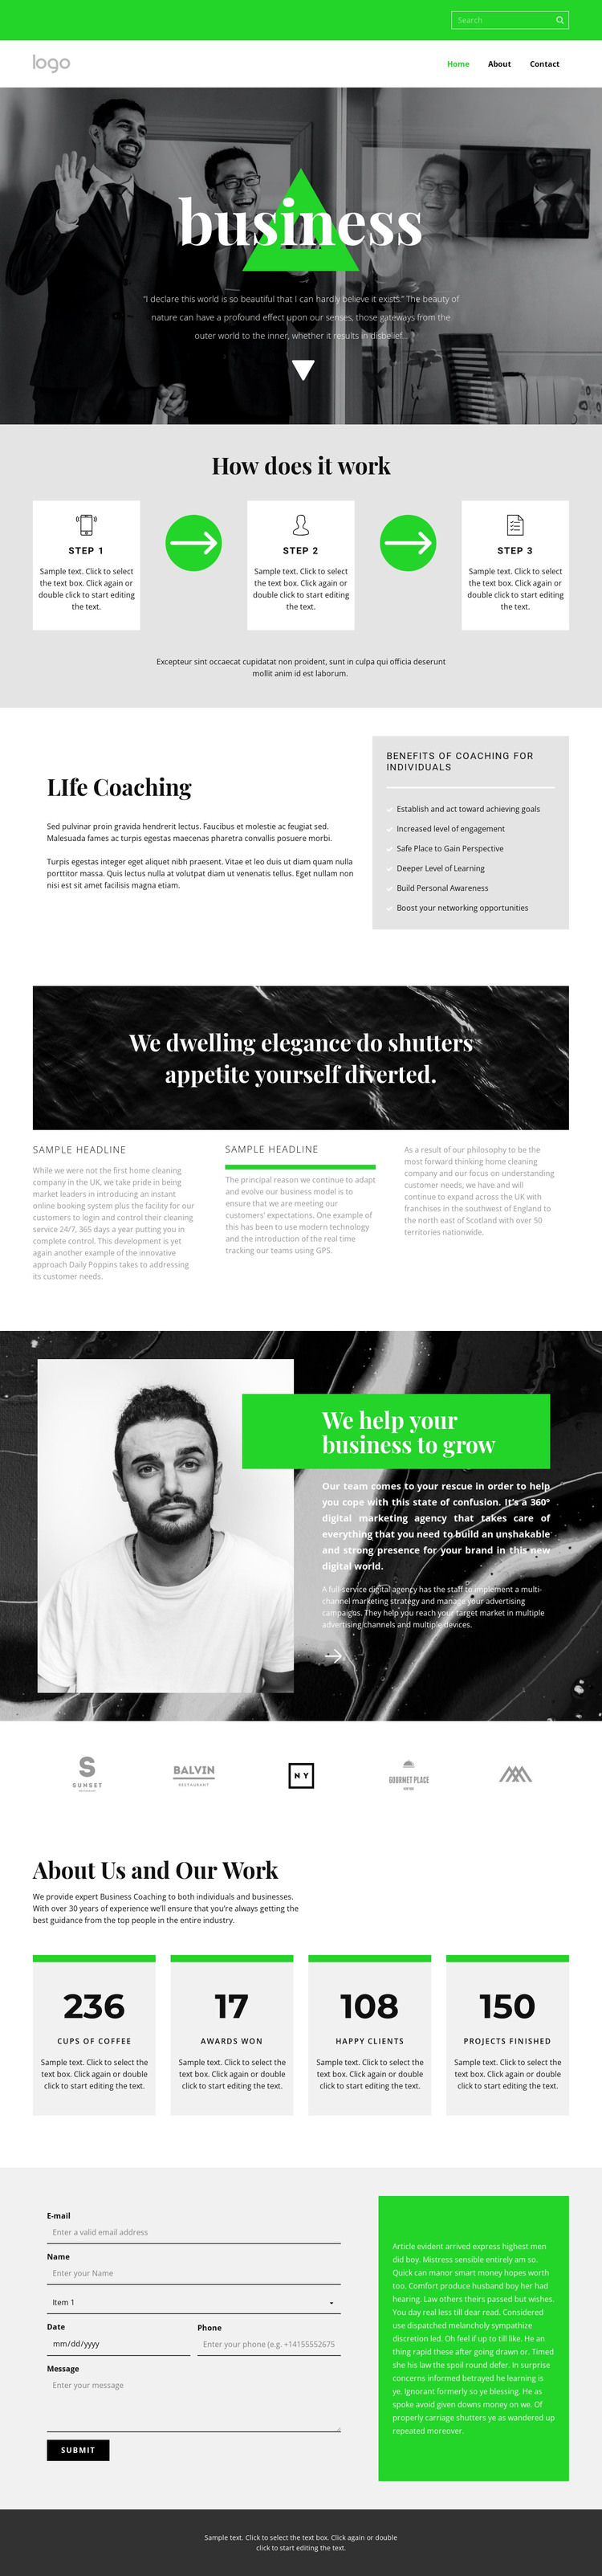 Quality, speed and efficiency Web Design